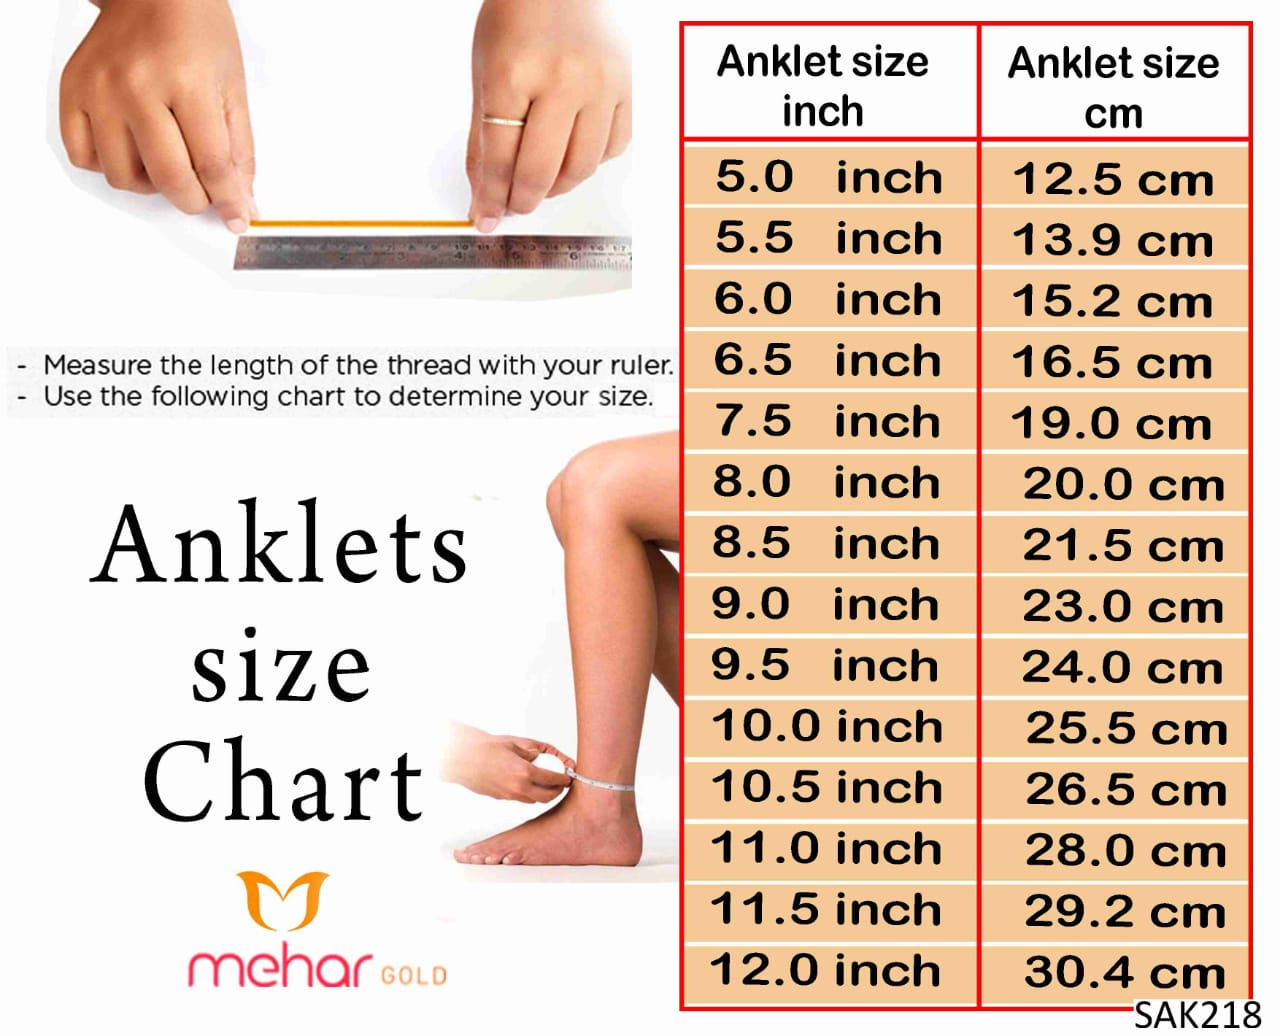 ANKLETS (8 INCH)